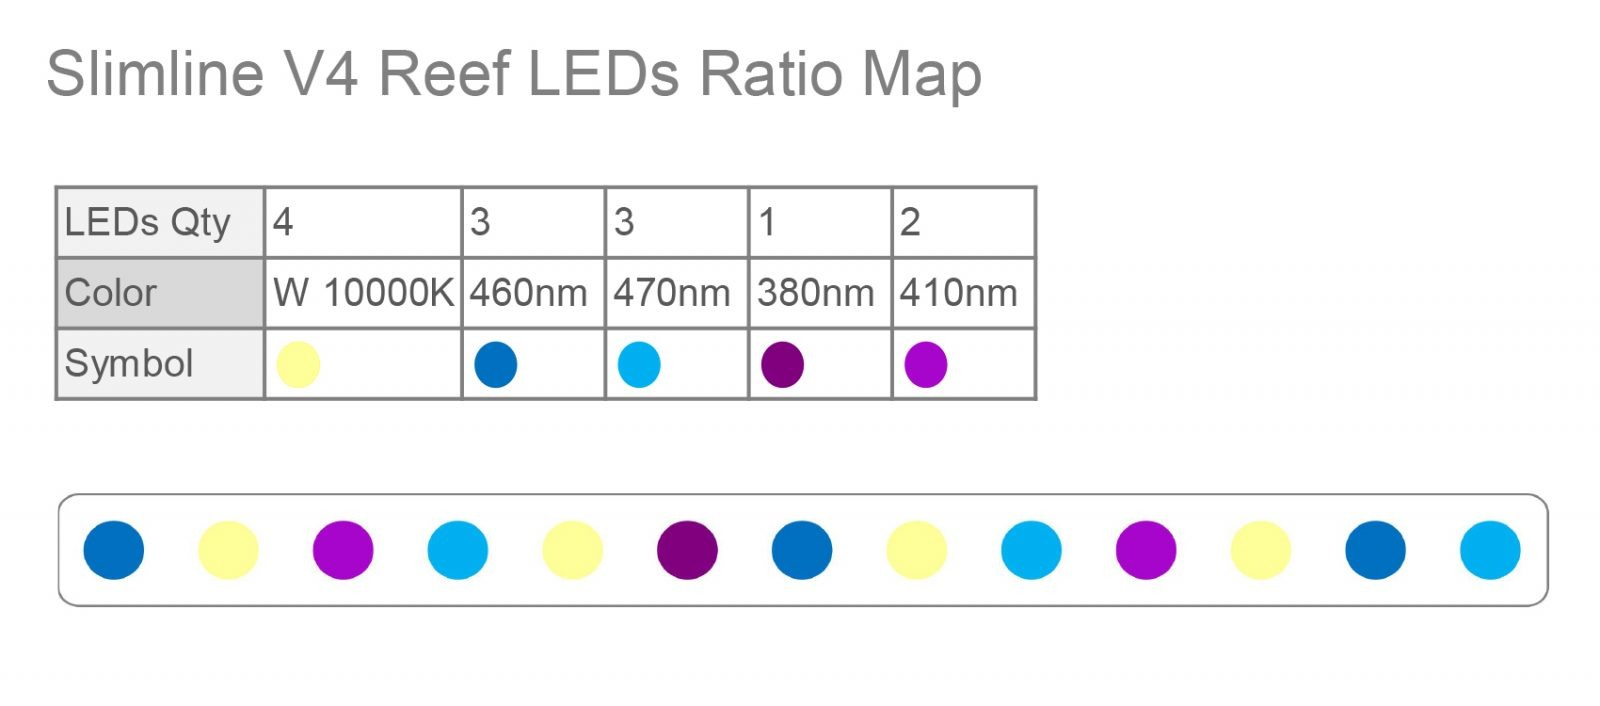 Slimline V4 LED reef ratio map 20170620 update (1)